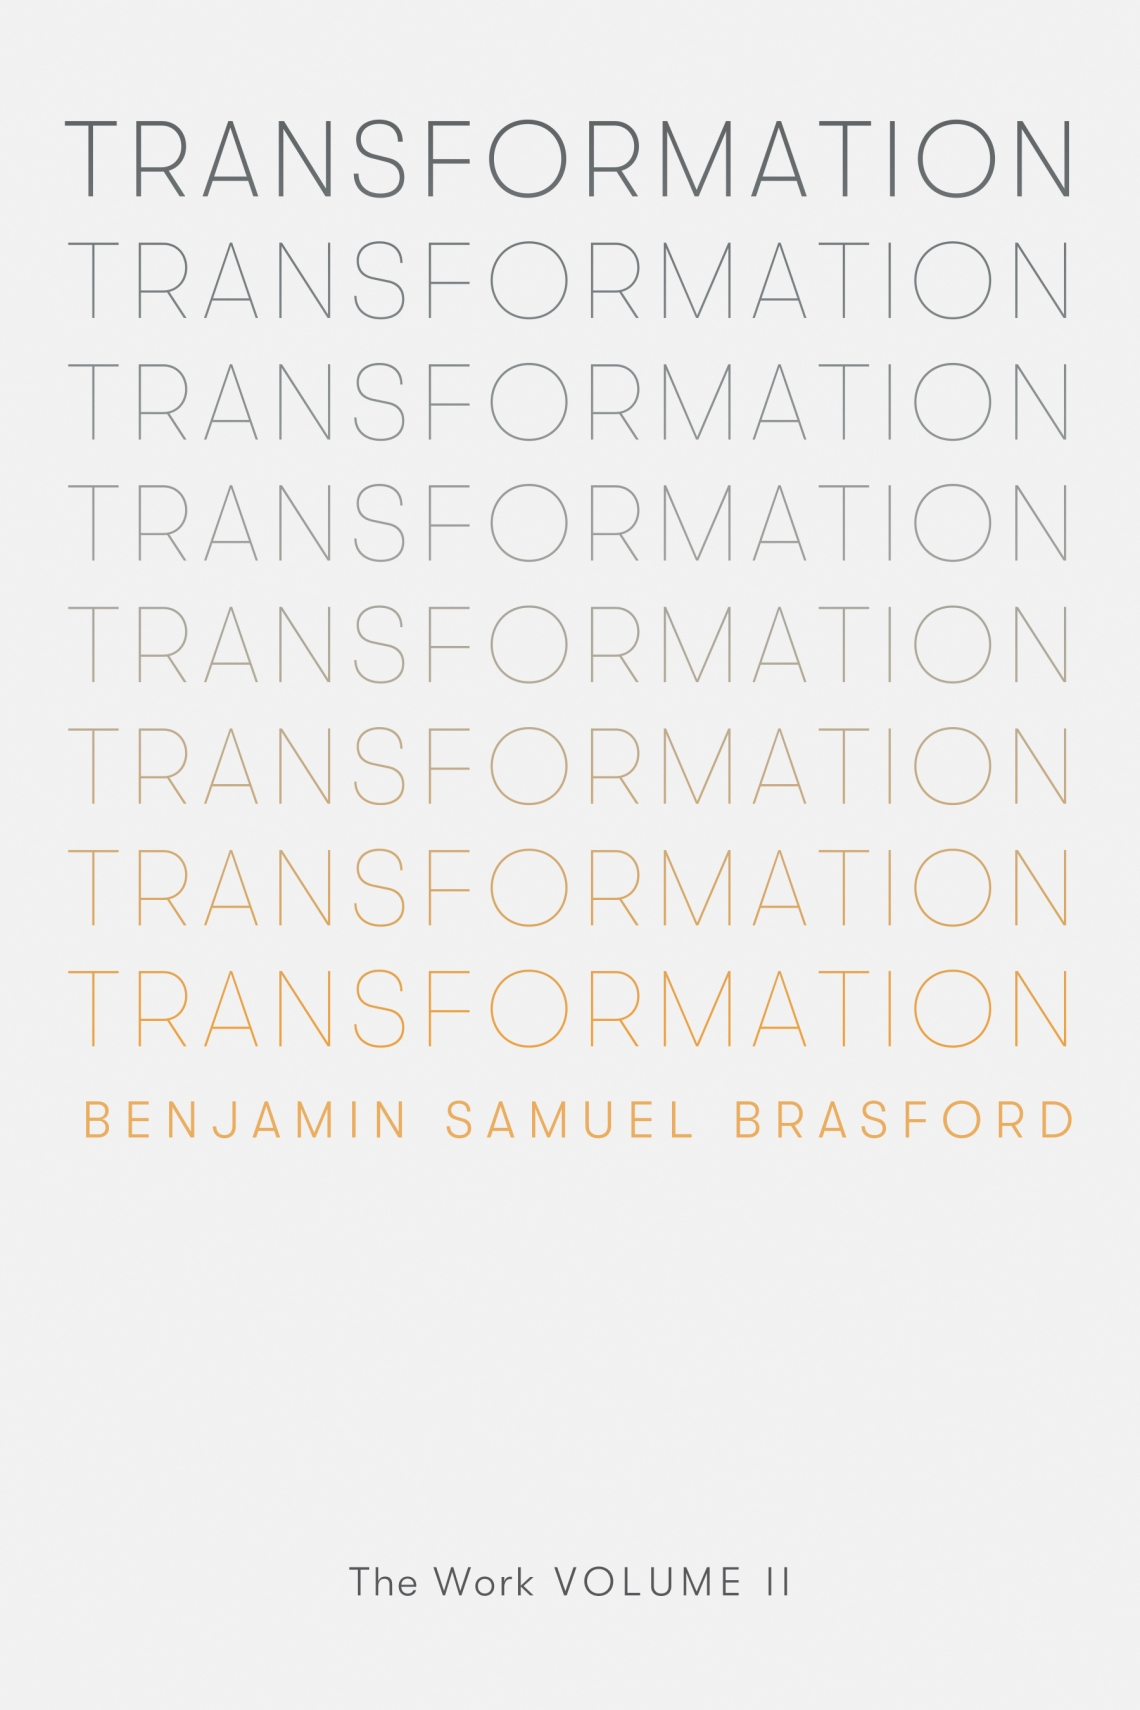 Transformation_Amazon_KDP_cover